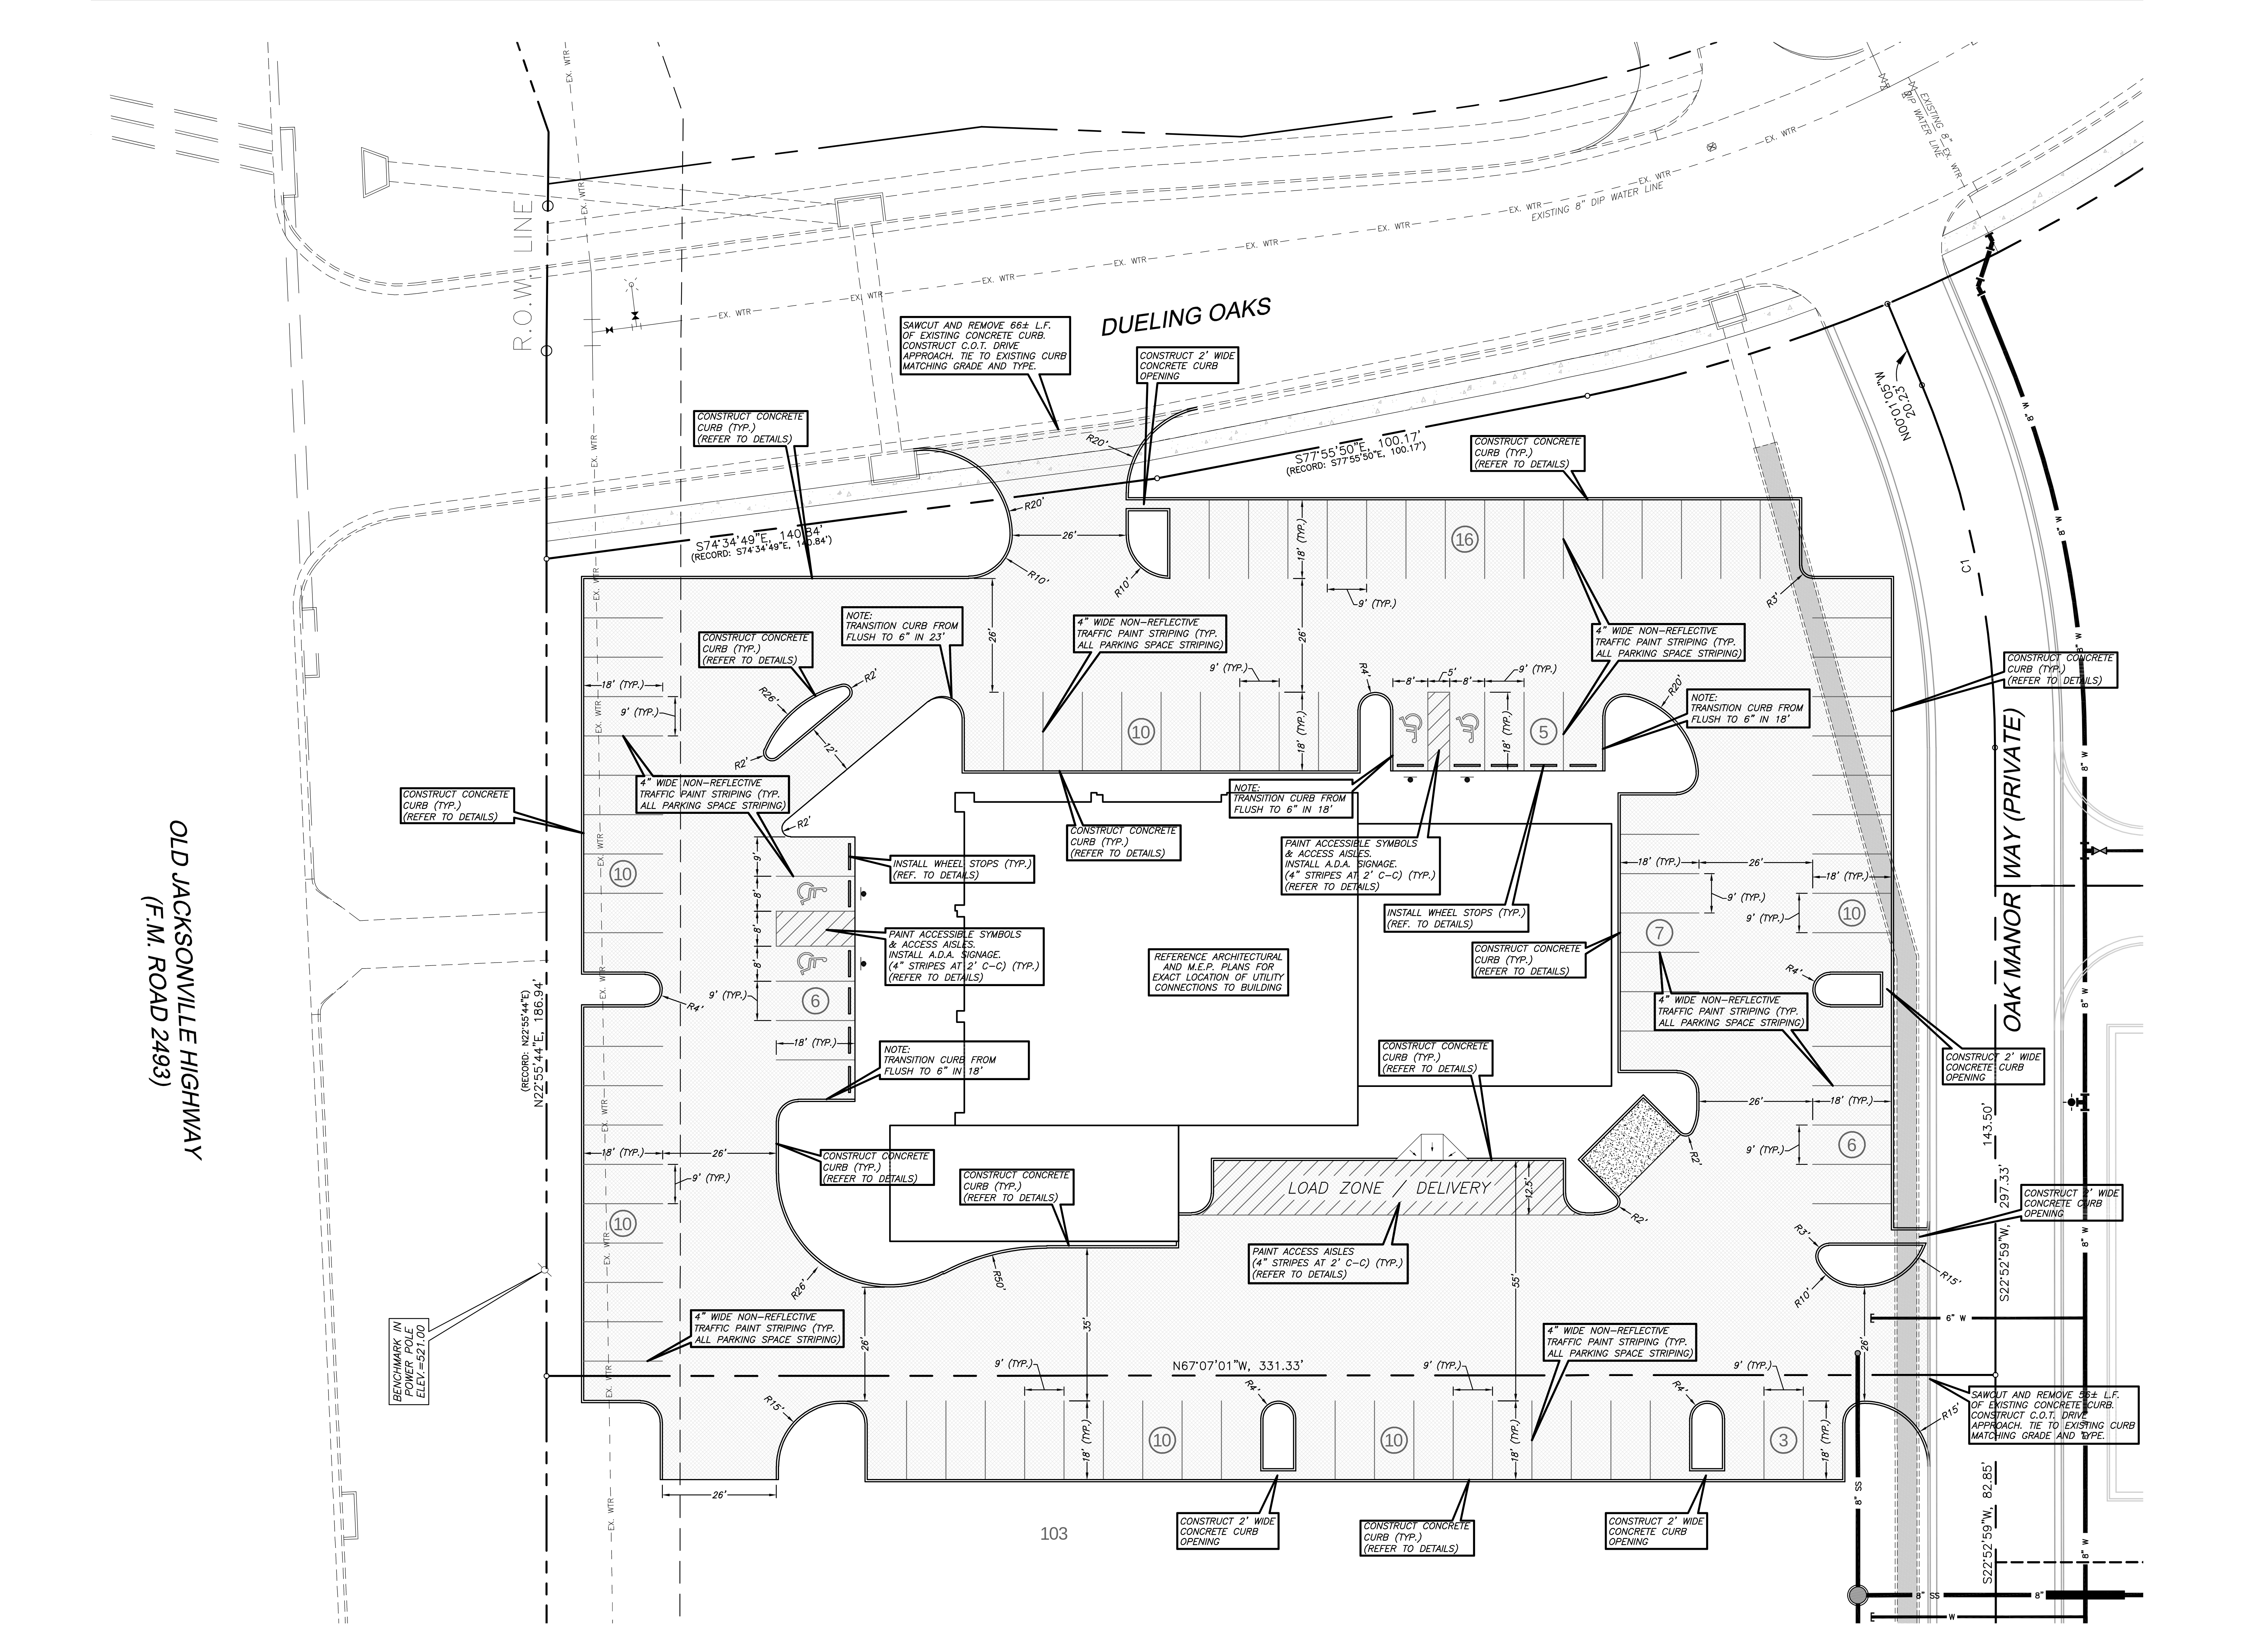 2376 Dueling Oaks Dr: site plan